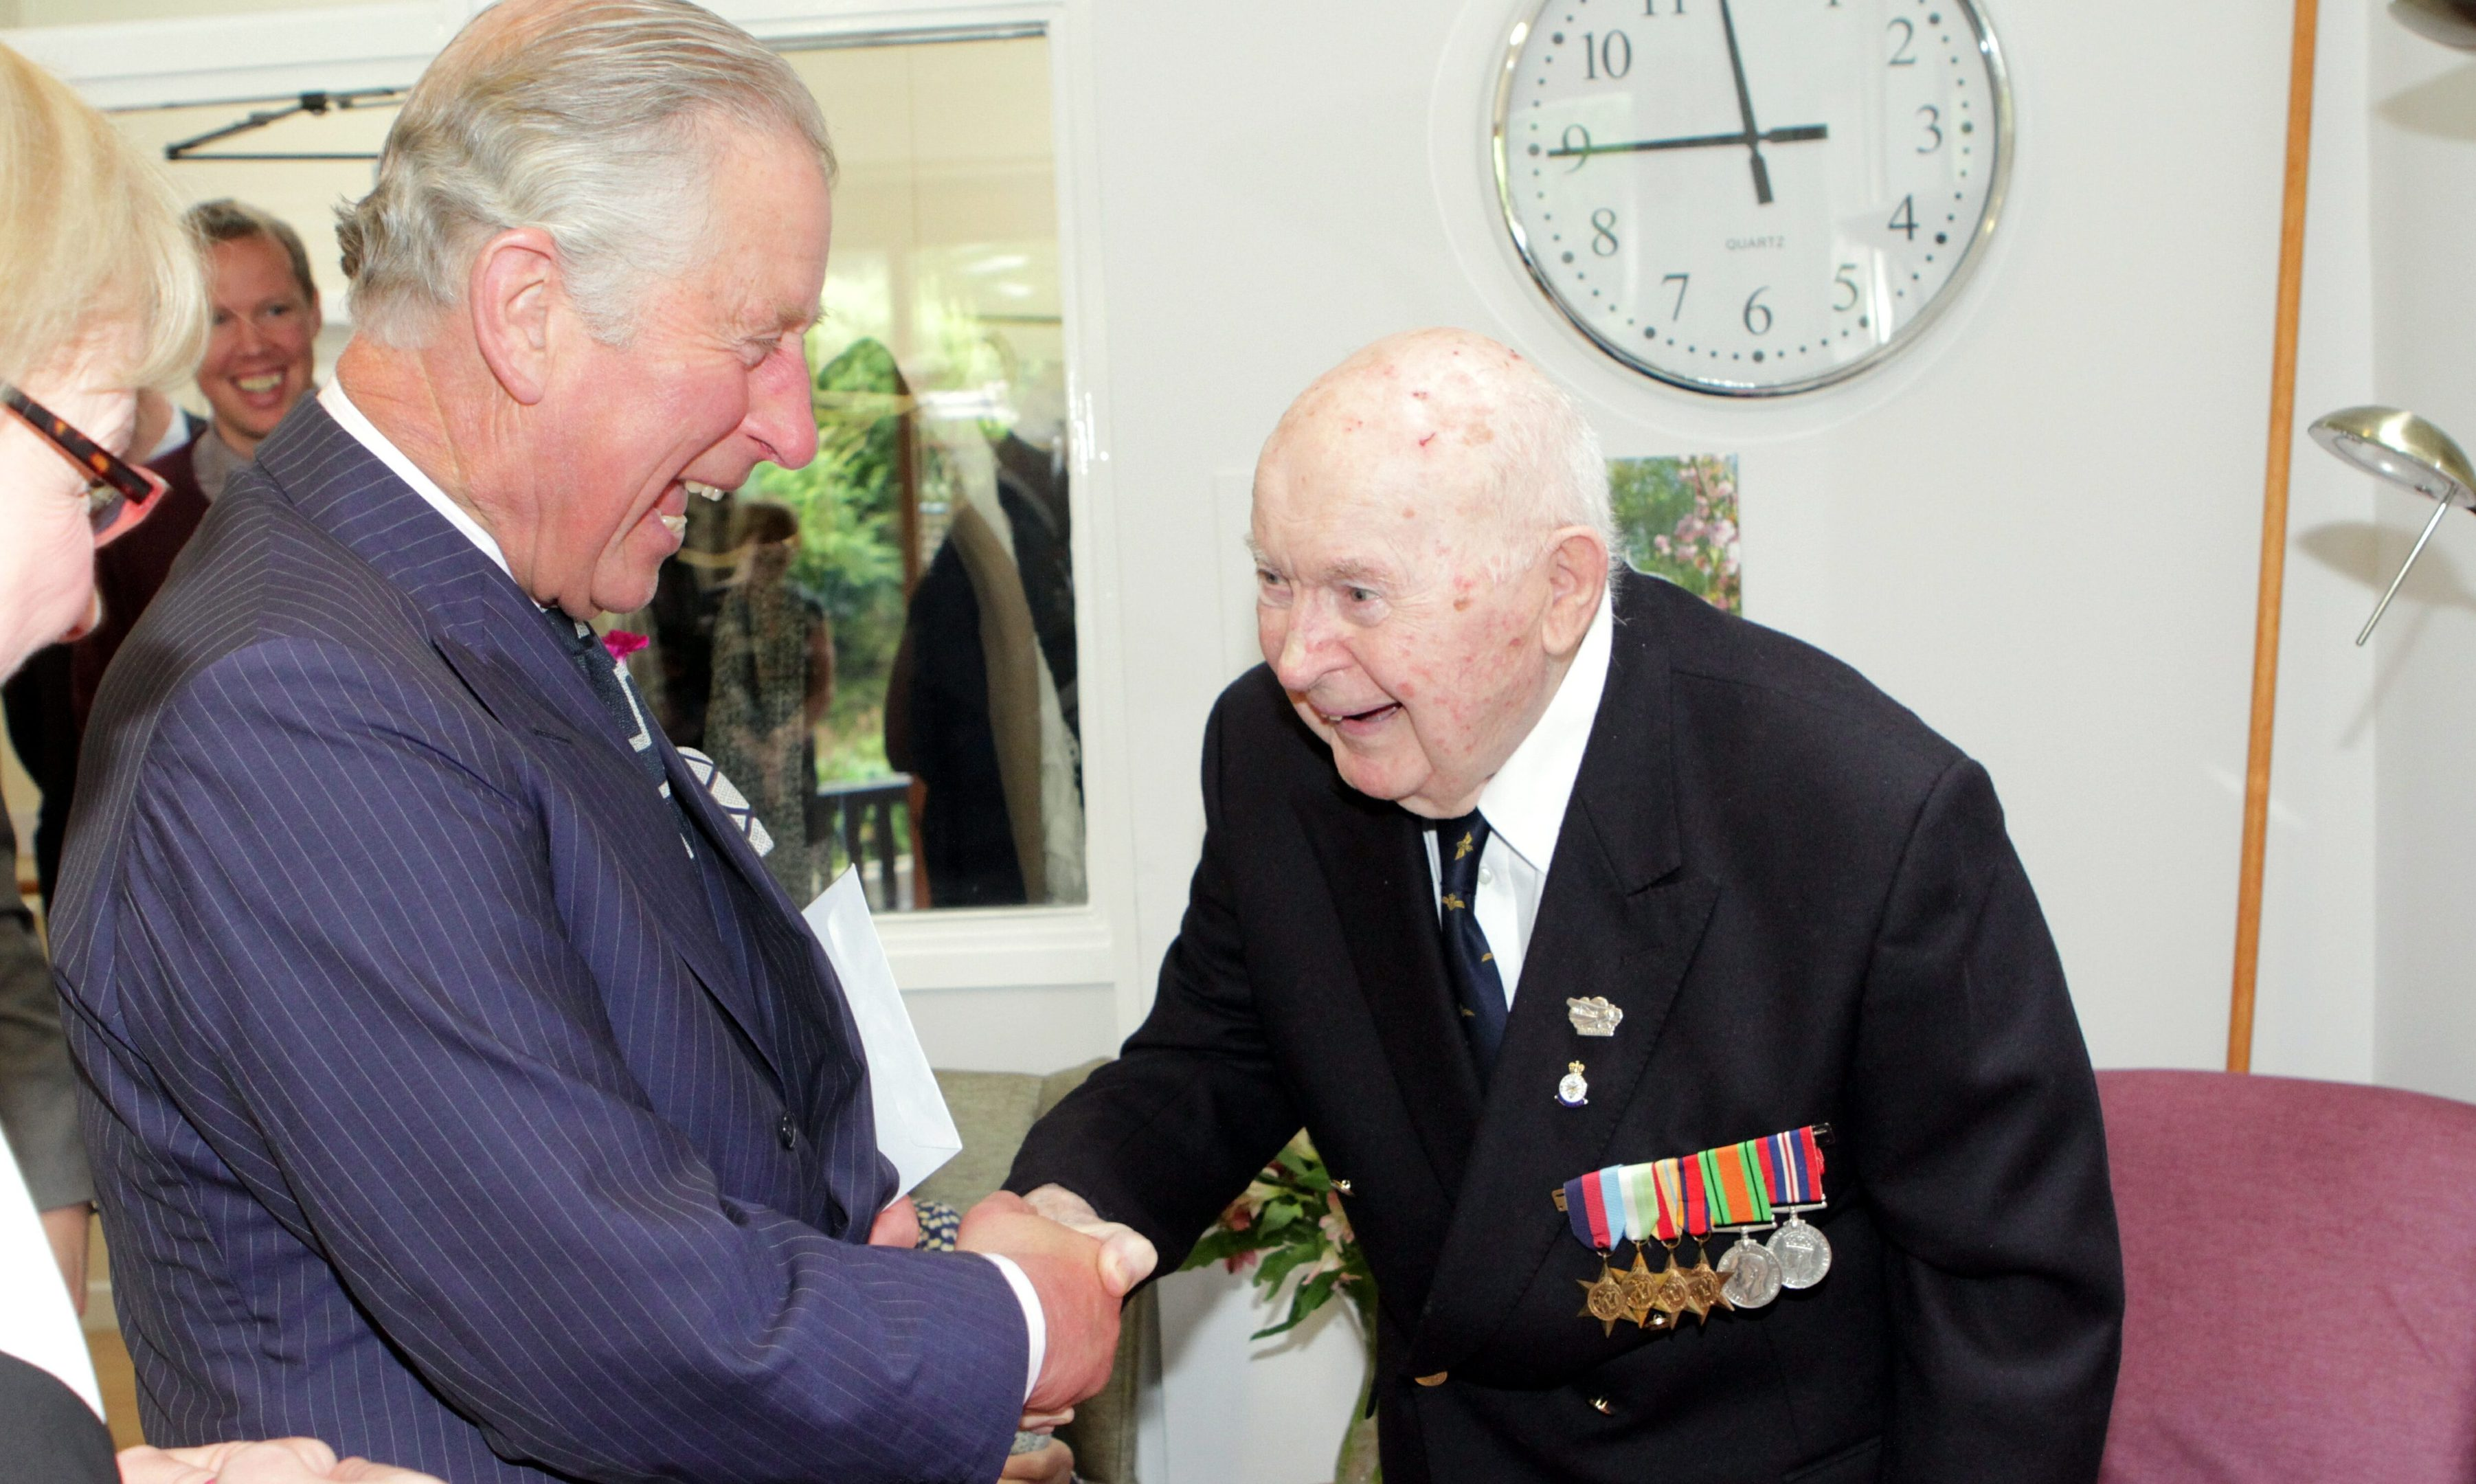 Princes Charles was greeted by Perth pilot John Moffat on his visit to Viewlands House.